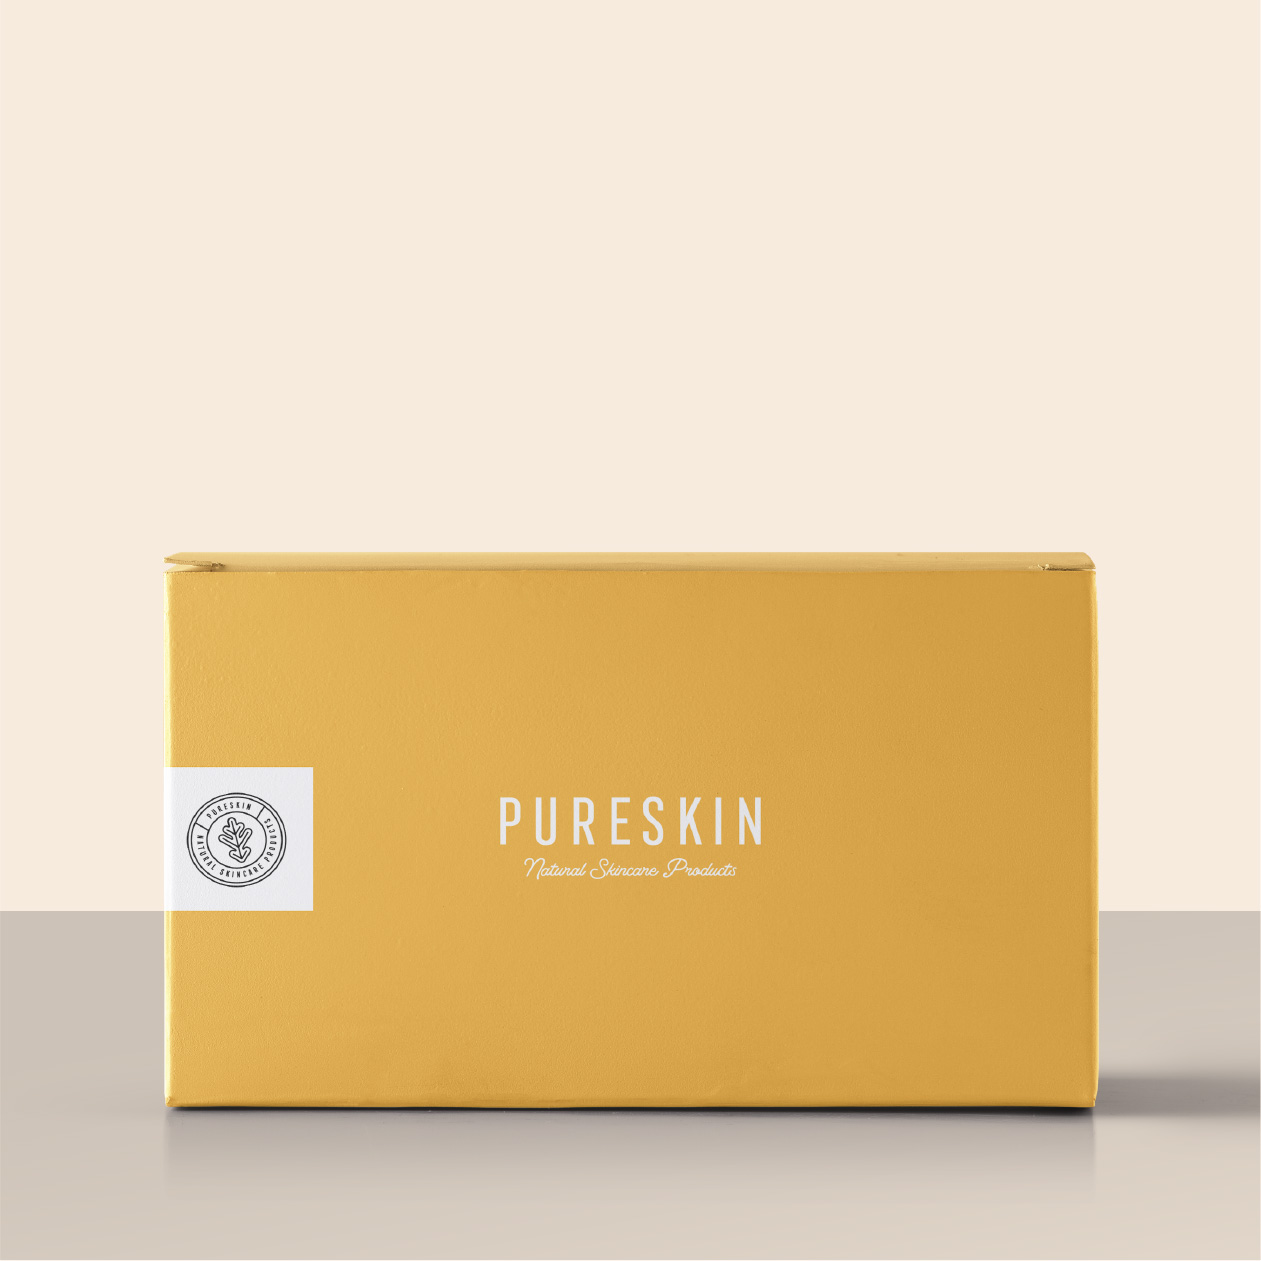 Marka Network Branding Agency - Pureskin Natural Skincare Products10.jpg